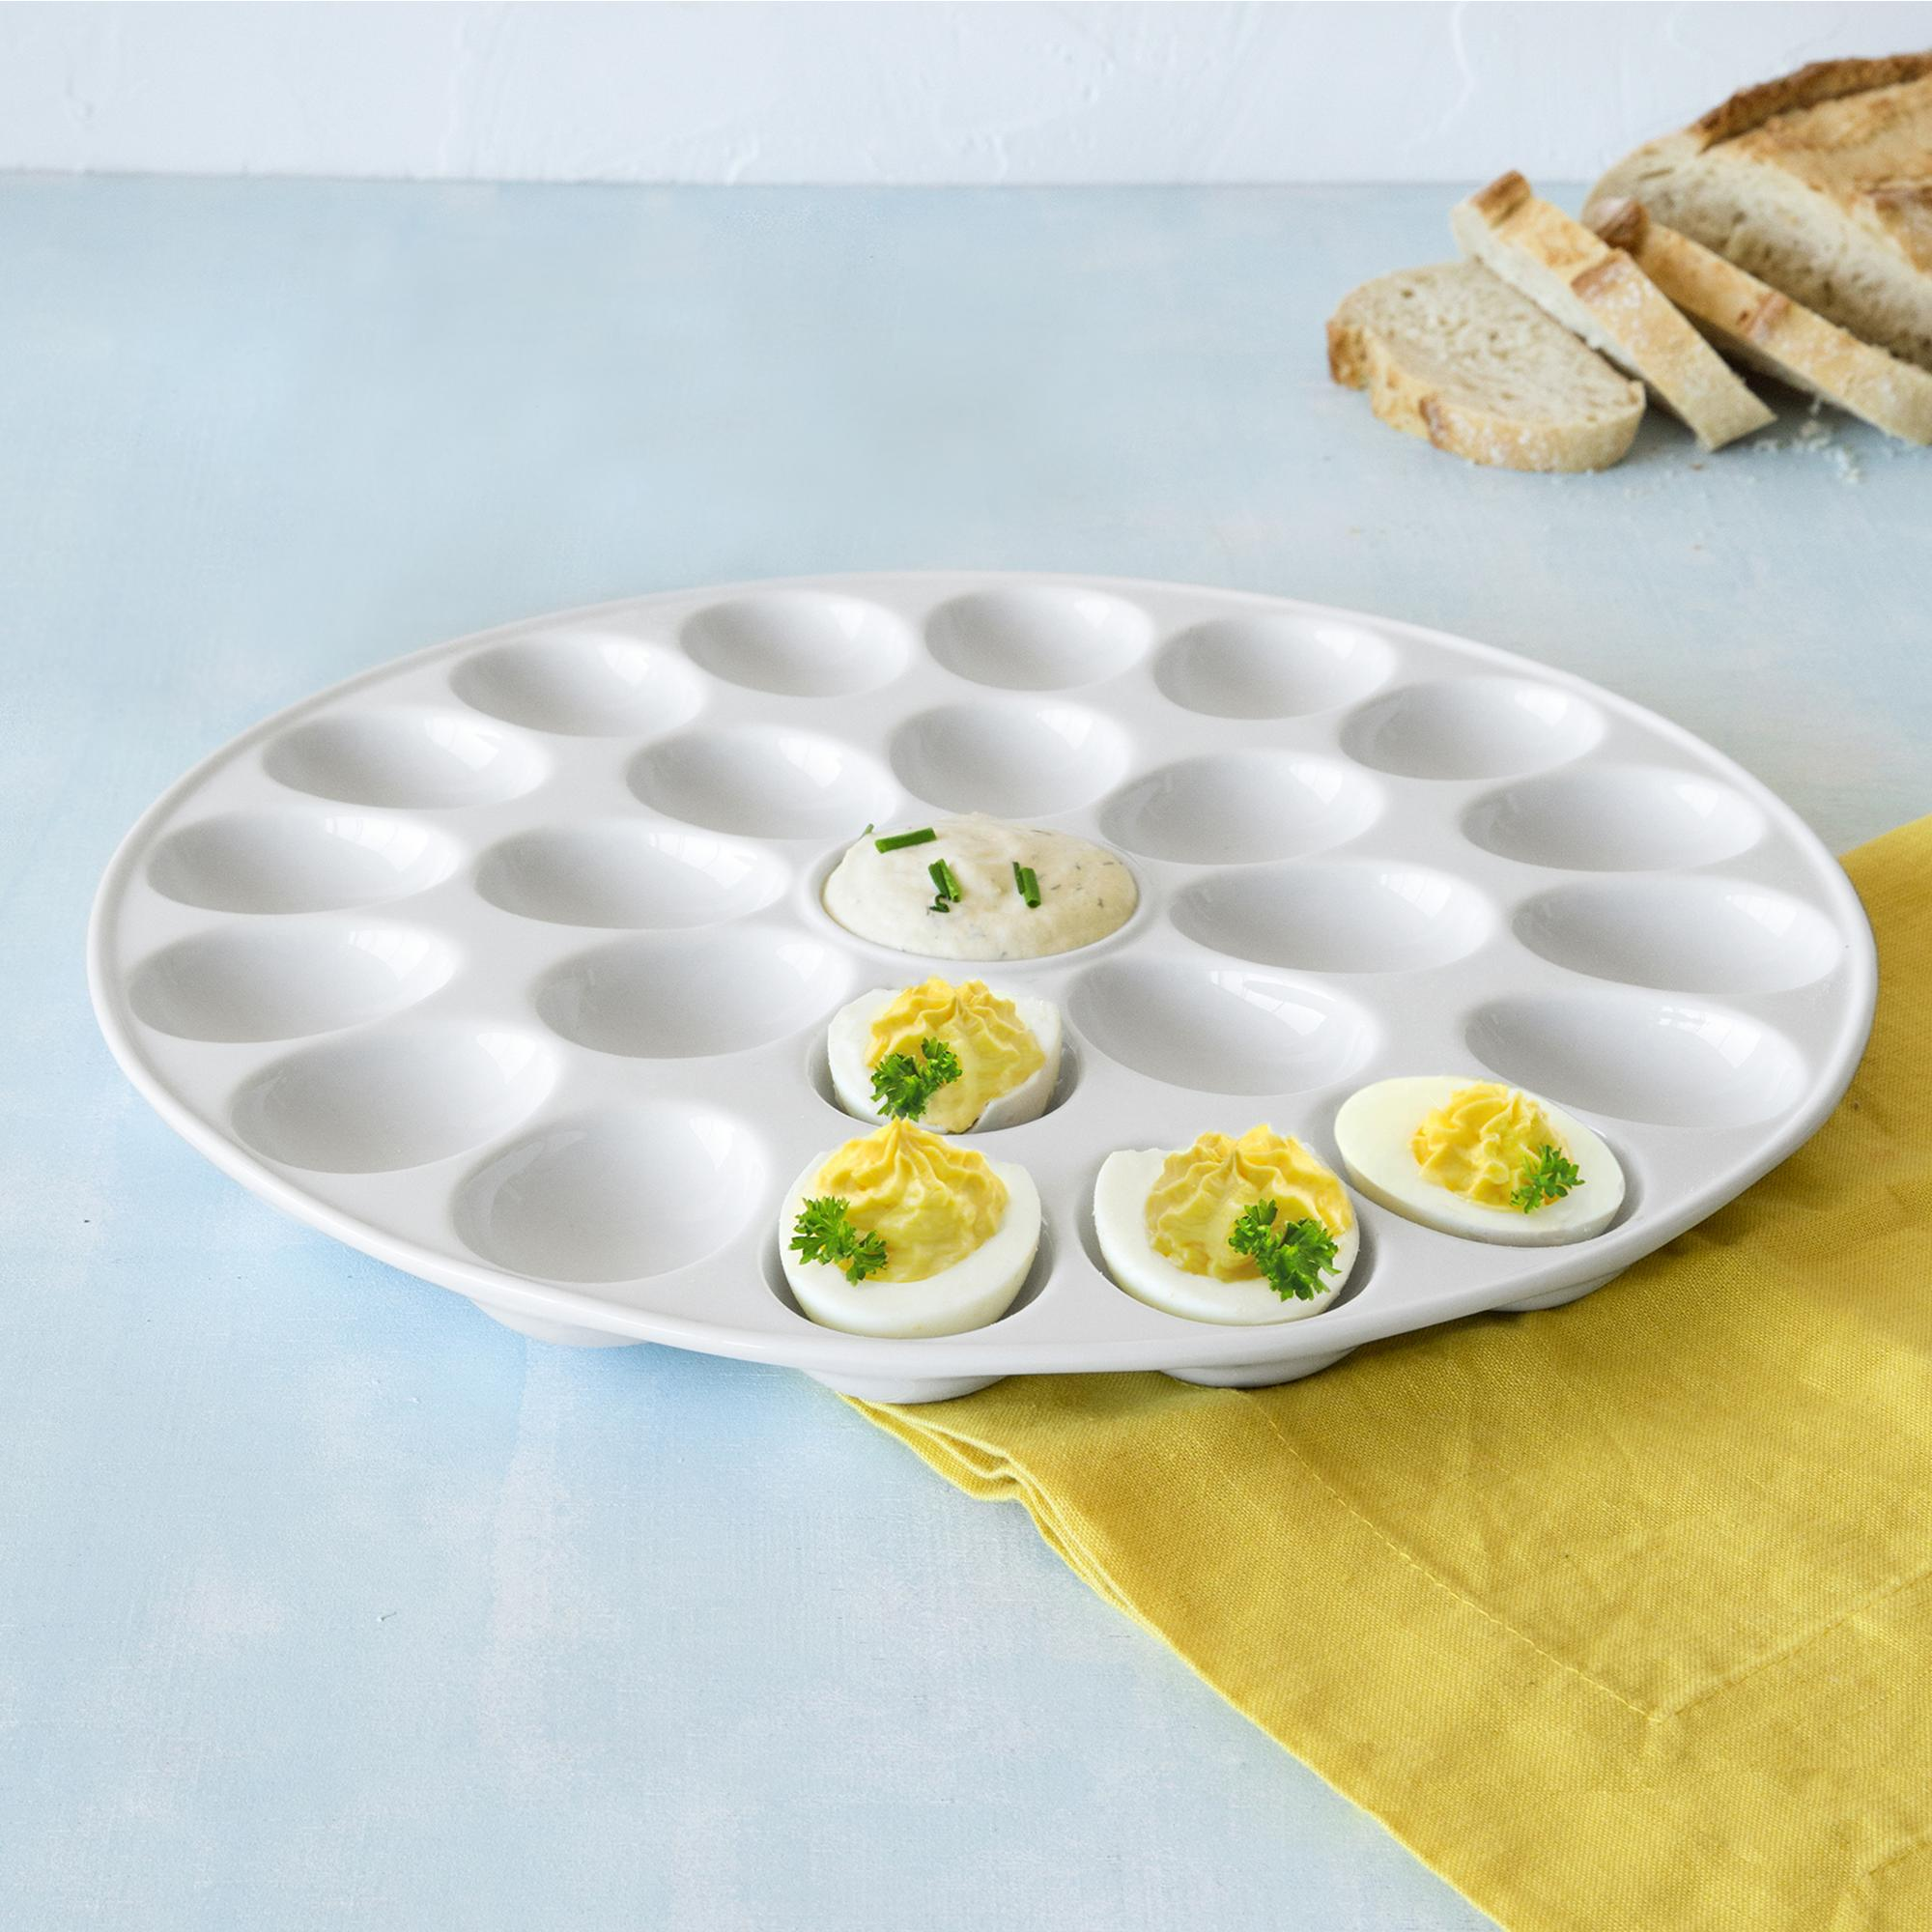 Better Homes and Garden Egg Platter, White Porcelain